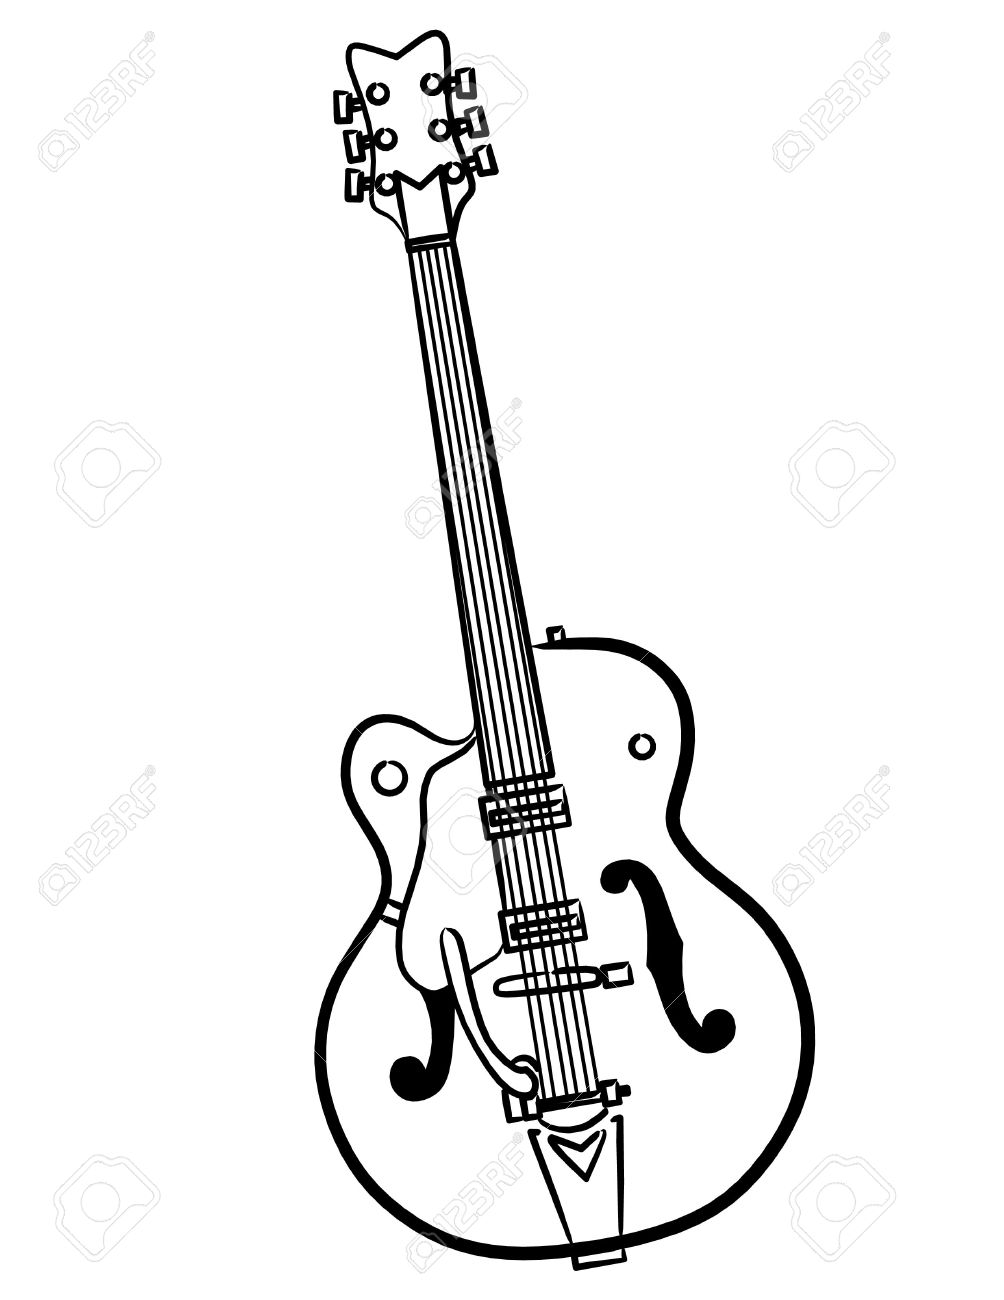 A Simple Electric Guitar Line Art Illustration Stock Photo, Picture ...